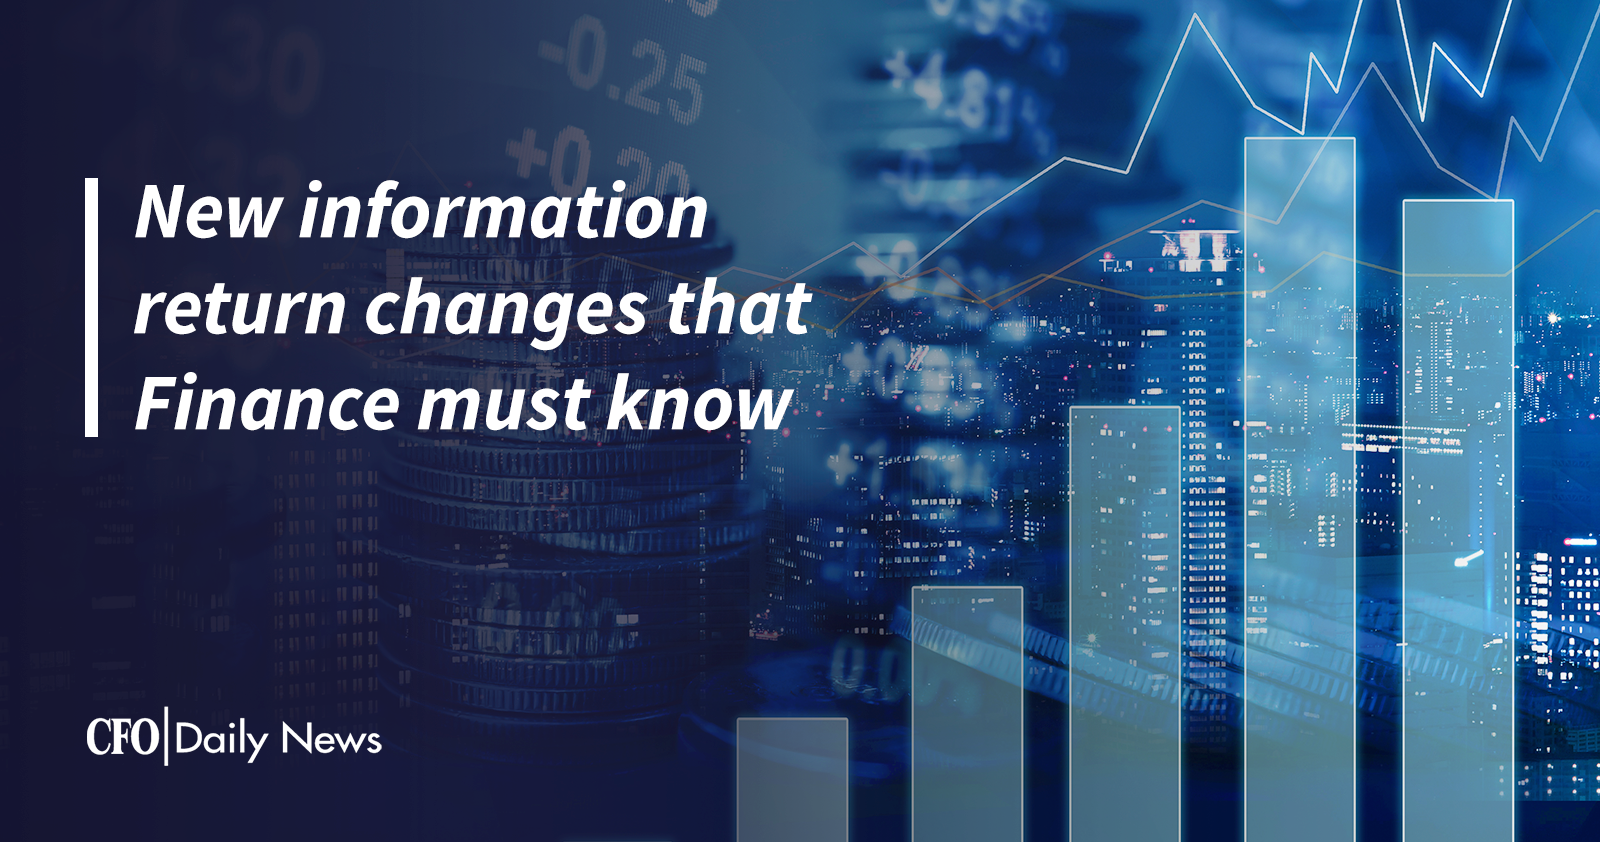 new information return changes that finance must know